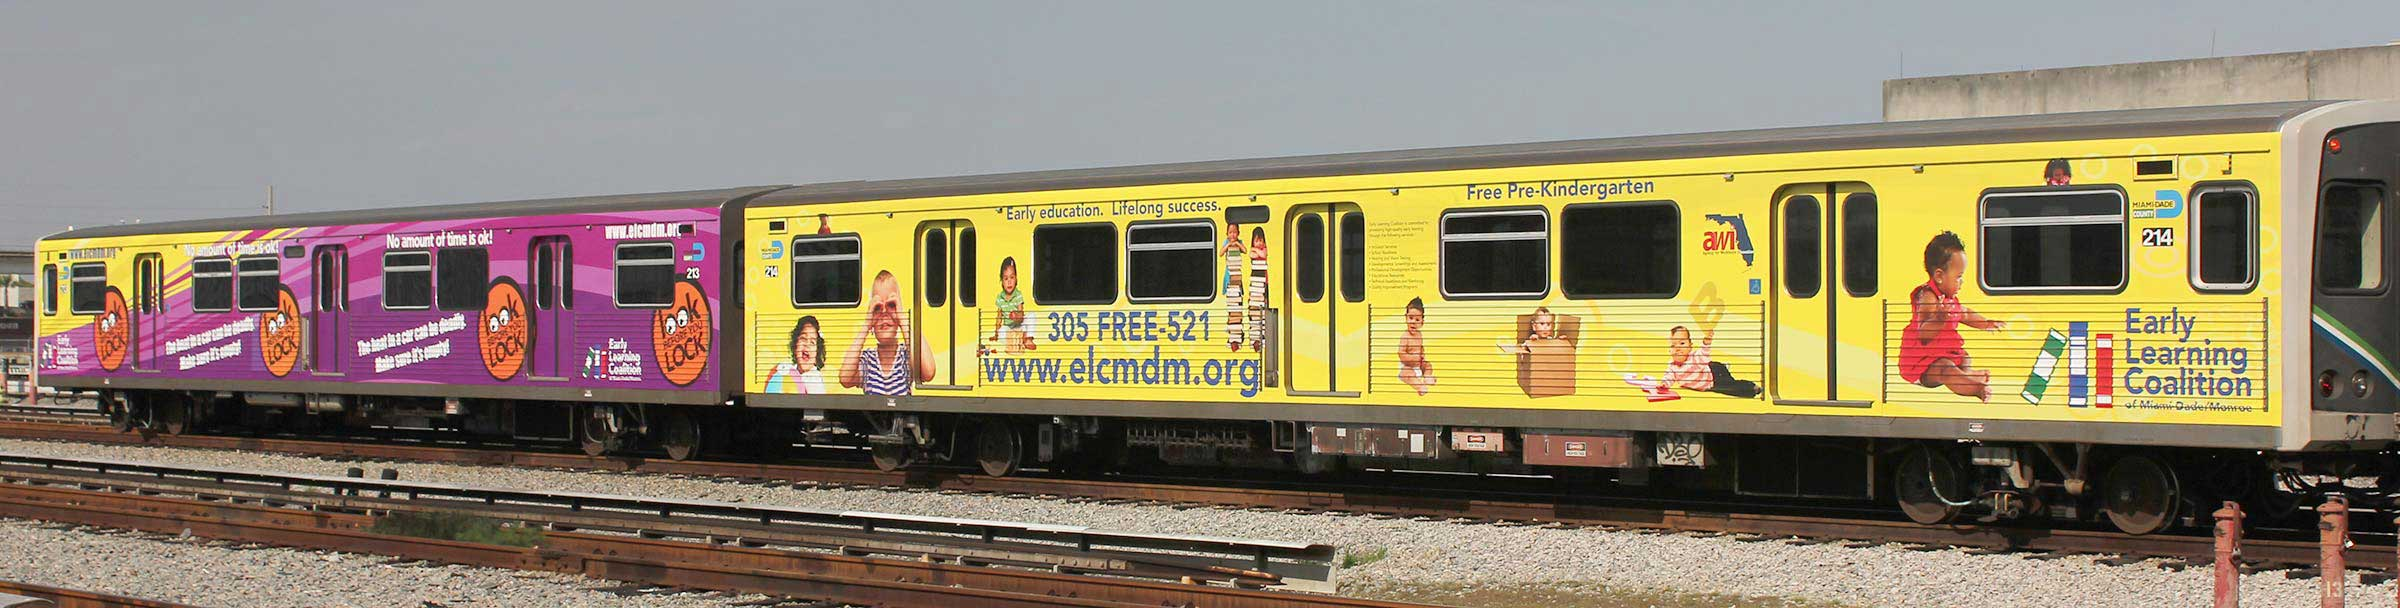 Train Car Wrap